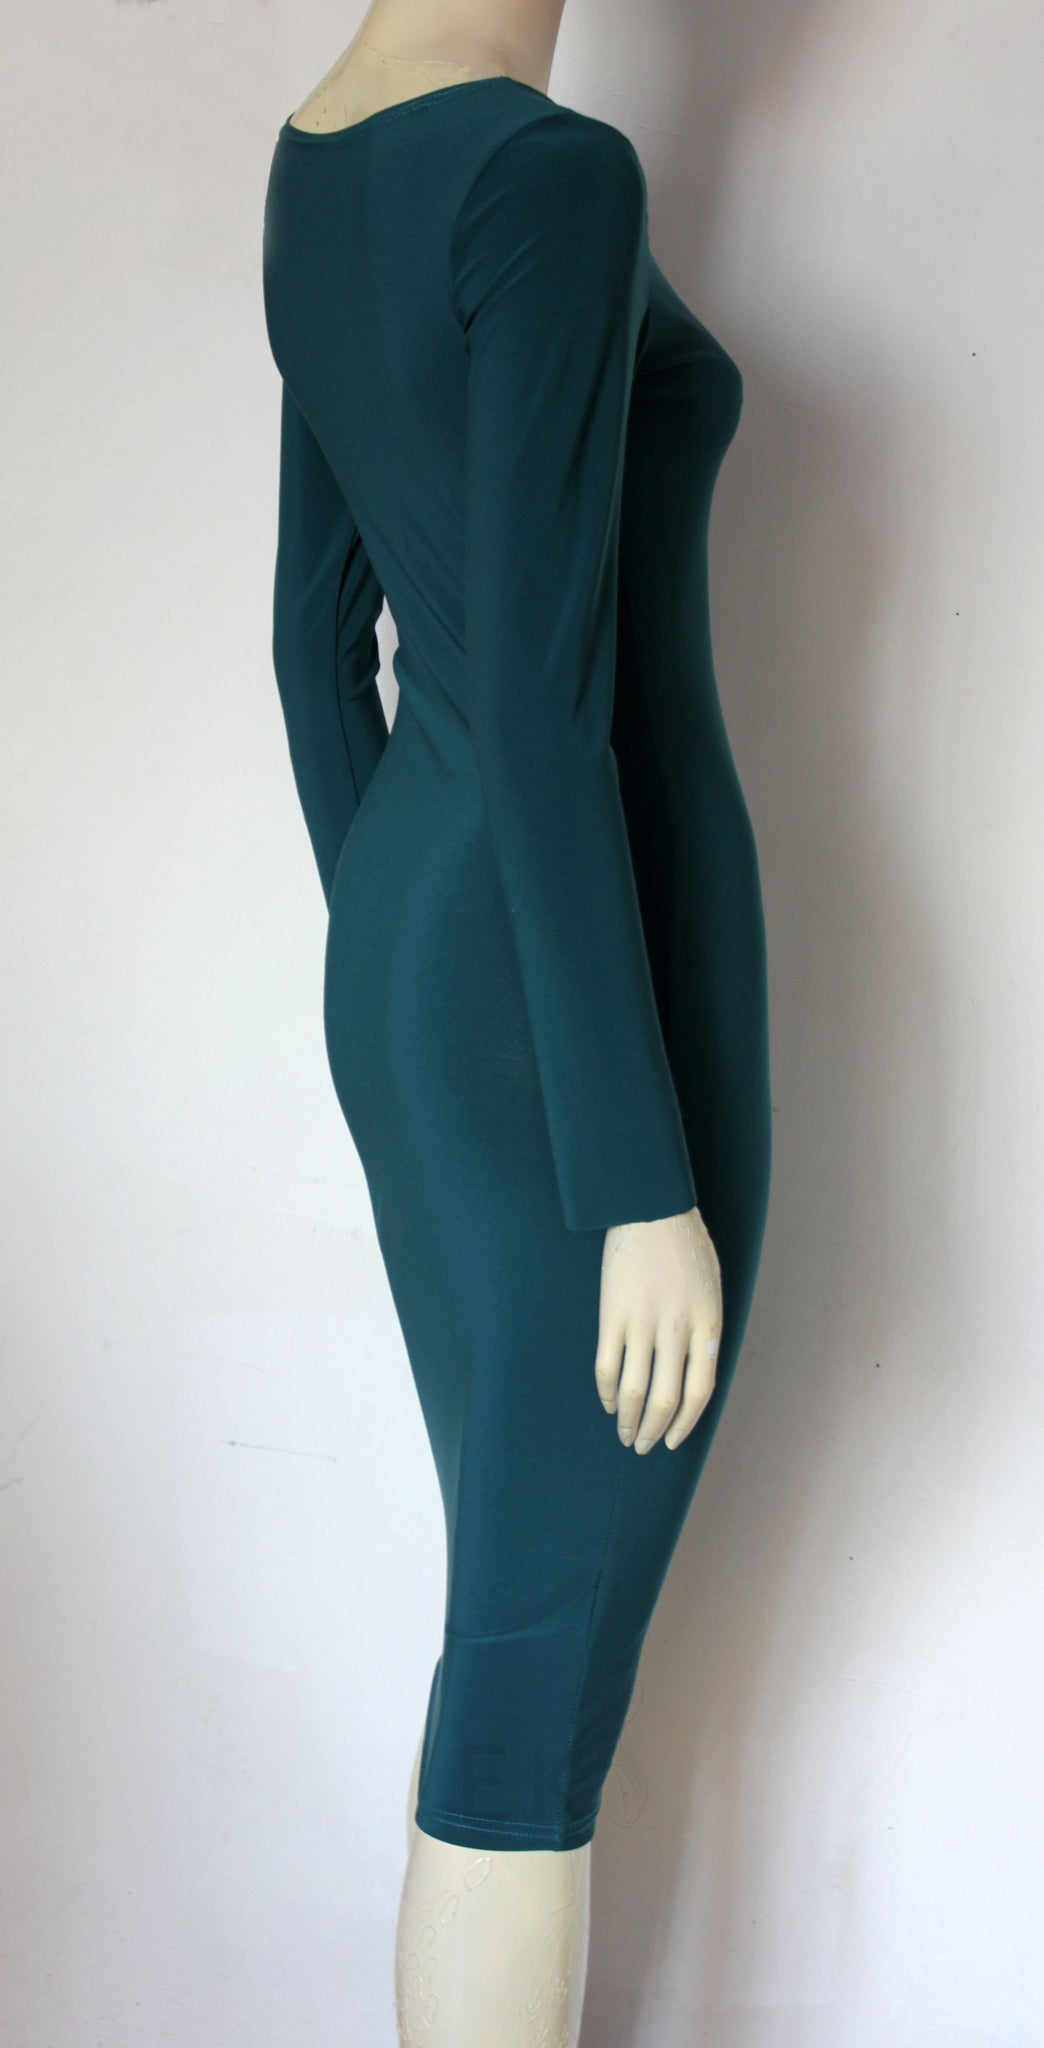 Teal Wiggle Dress Pencil Jersey Dress Long Sleeve Plus Size Dress Stretchy Hobble Dress